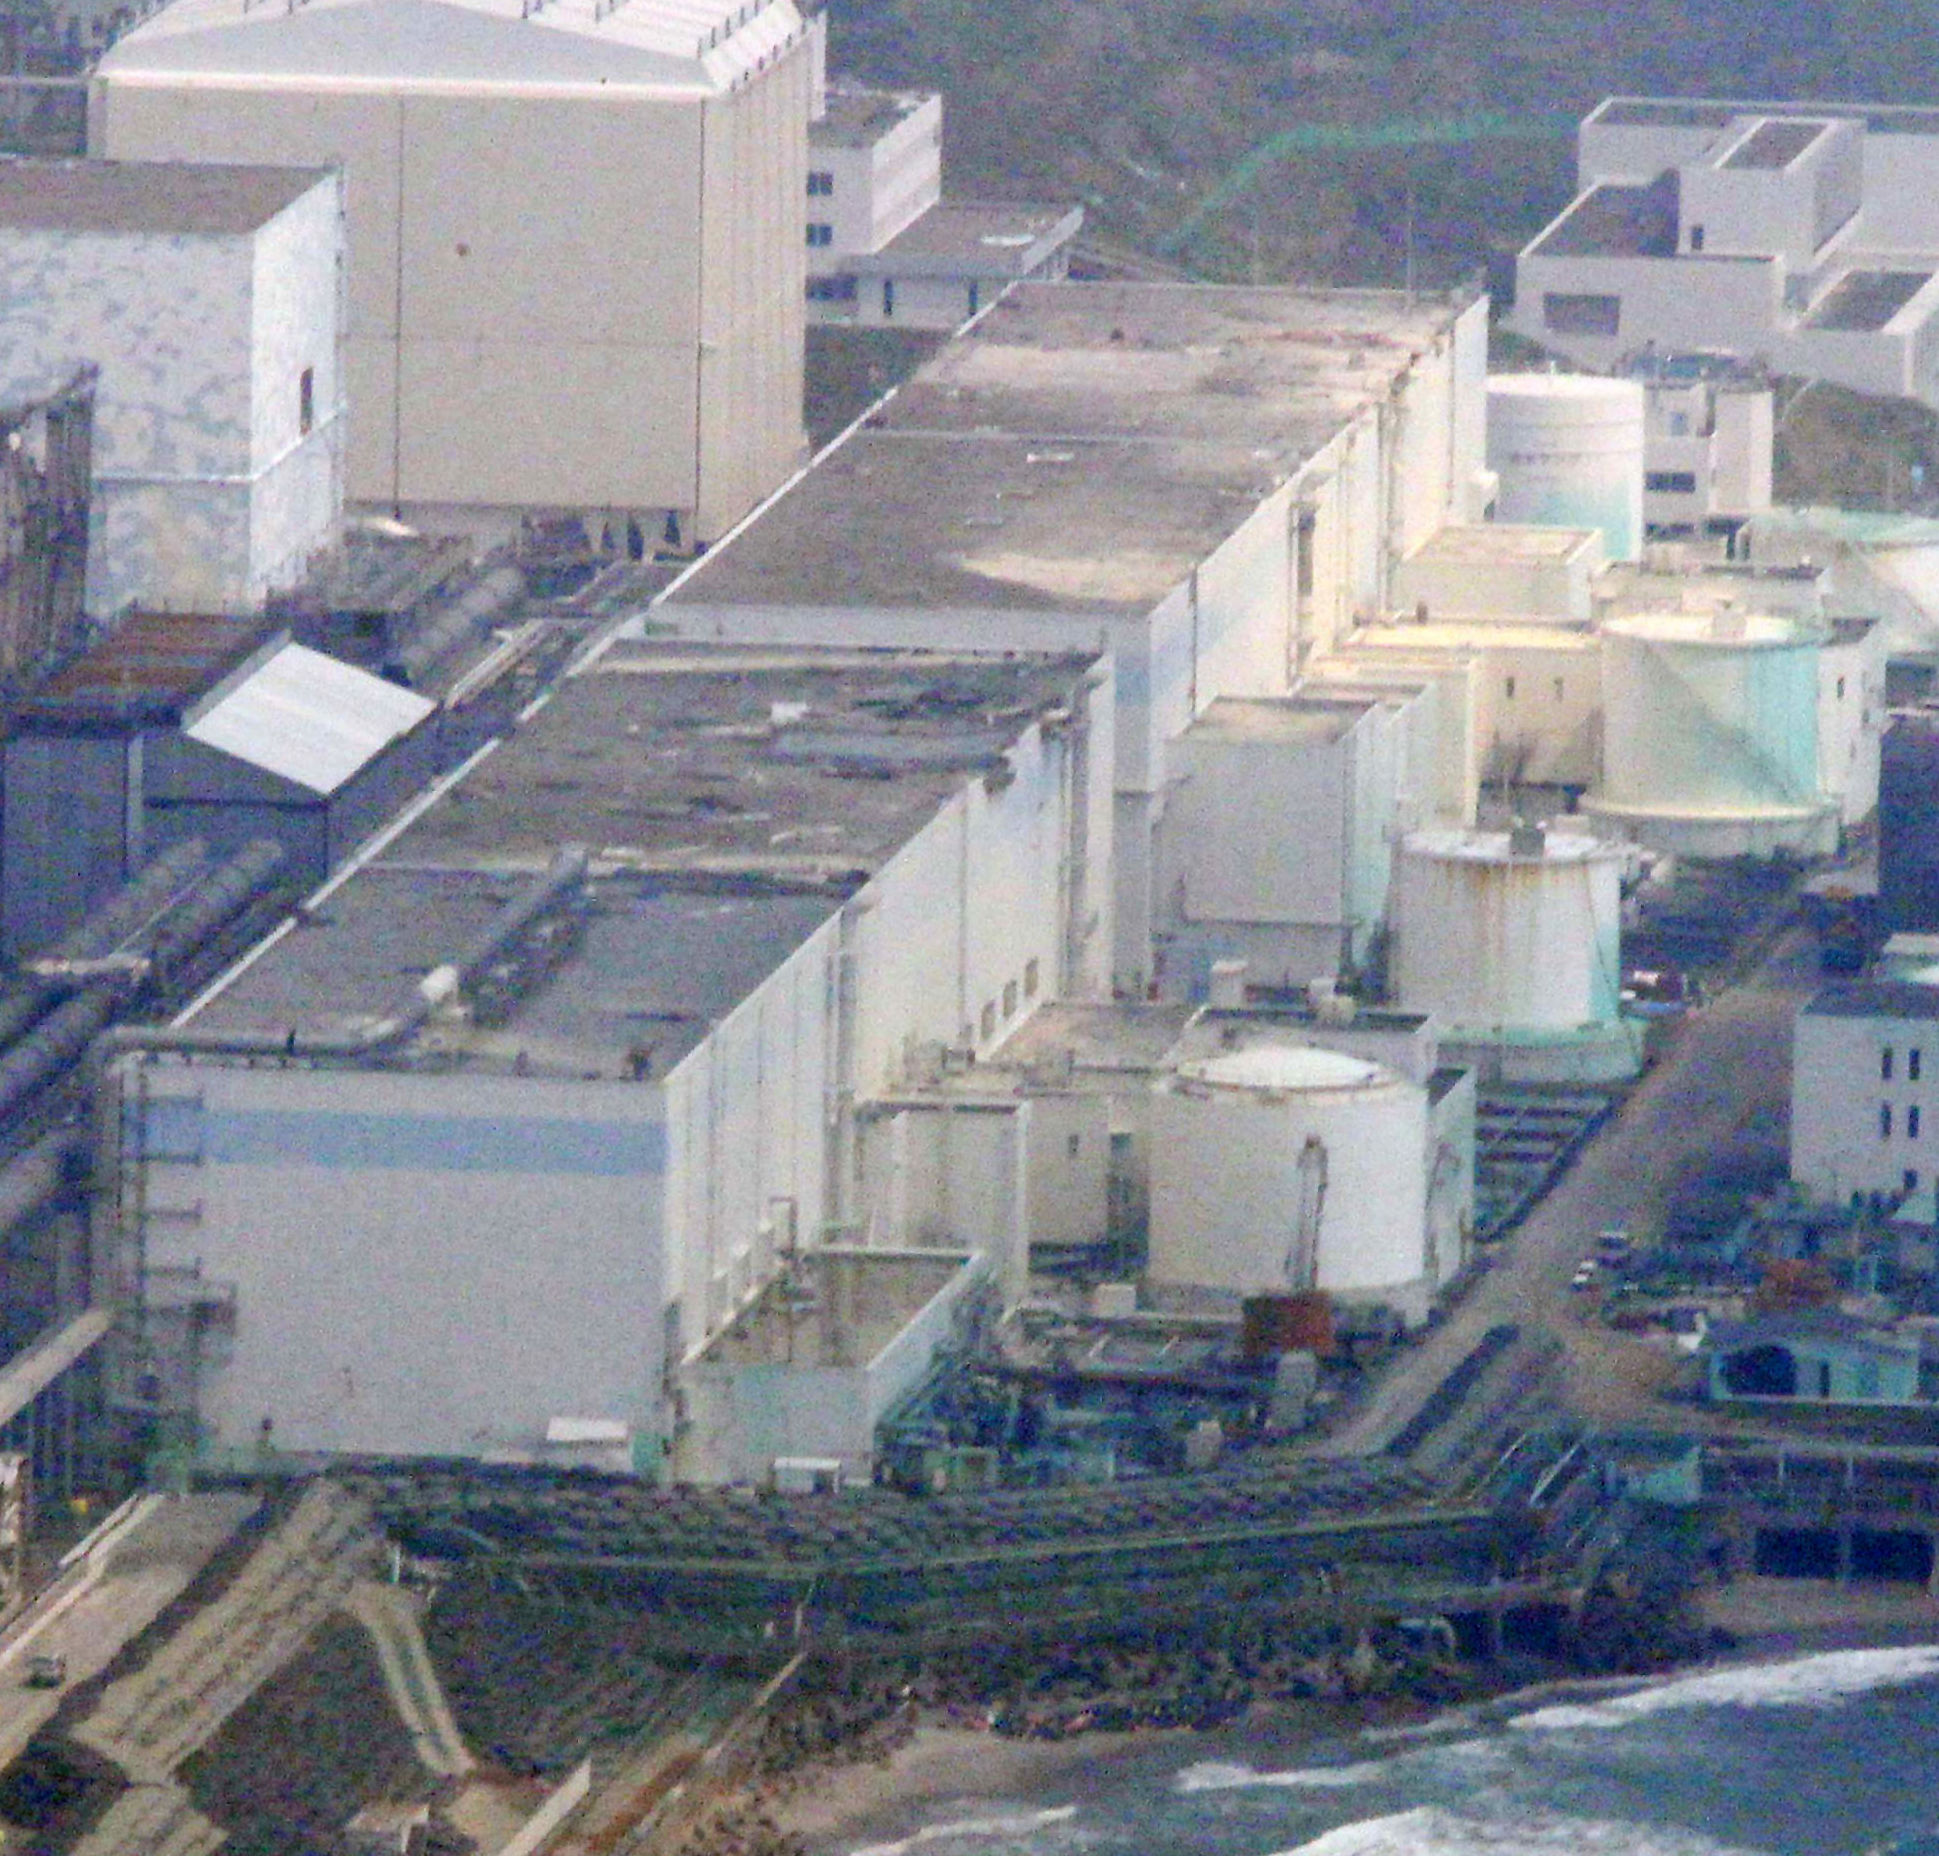 FILE - In this May 28, 2012 aerial file photo, reactors of the tsunami-stricken Fukushima Dai-ichi nuclear power plant stand in Okuma, Fukushima Prefecture, northeastern Japan. An underwater robot on Wednesday, July 19, 2017, captured images and other dat